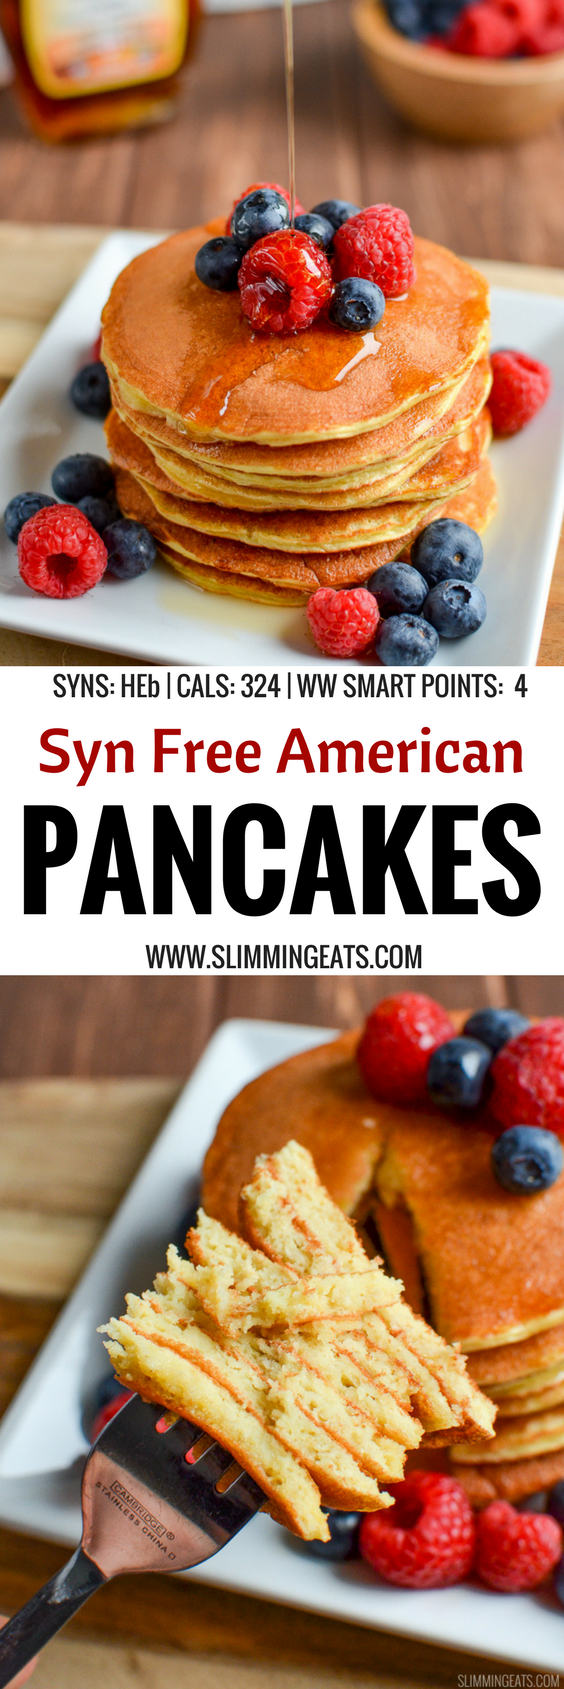 The most delicious, Fluffy Syn Free American Style Pancakes that you will ever make. A perfect breakfast or dessert. Gluten Free, Vegetarian, Slimming World and Weight Watchers friendly | SYNS: 0 (HEB) | CALORIES: 324 | WEIGHT WATCHERS SMART POINTS: 4 | www.slimmingeats.com